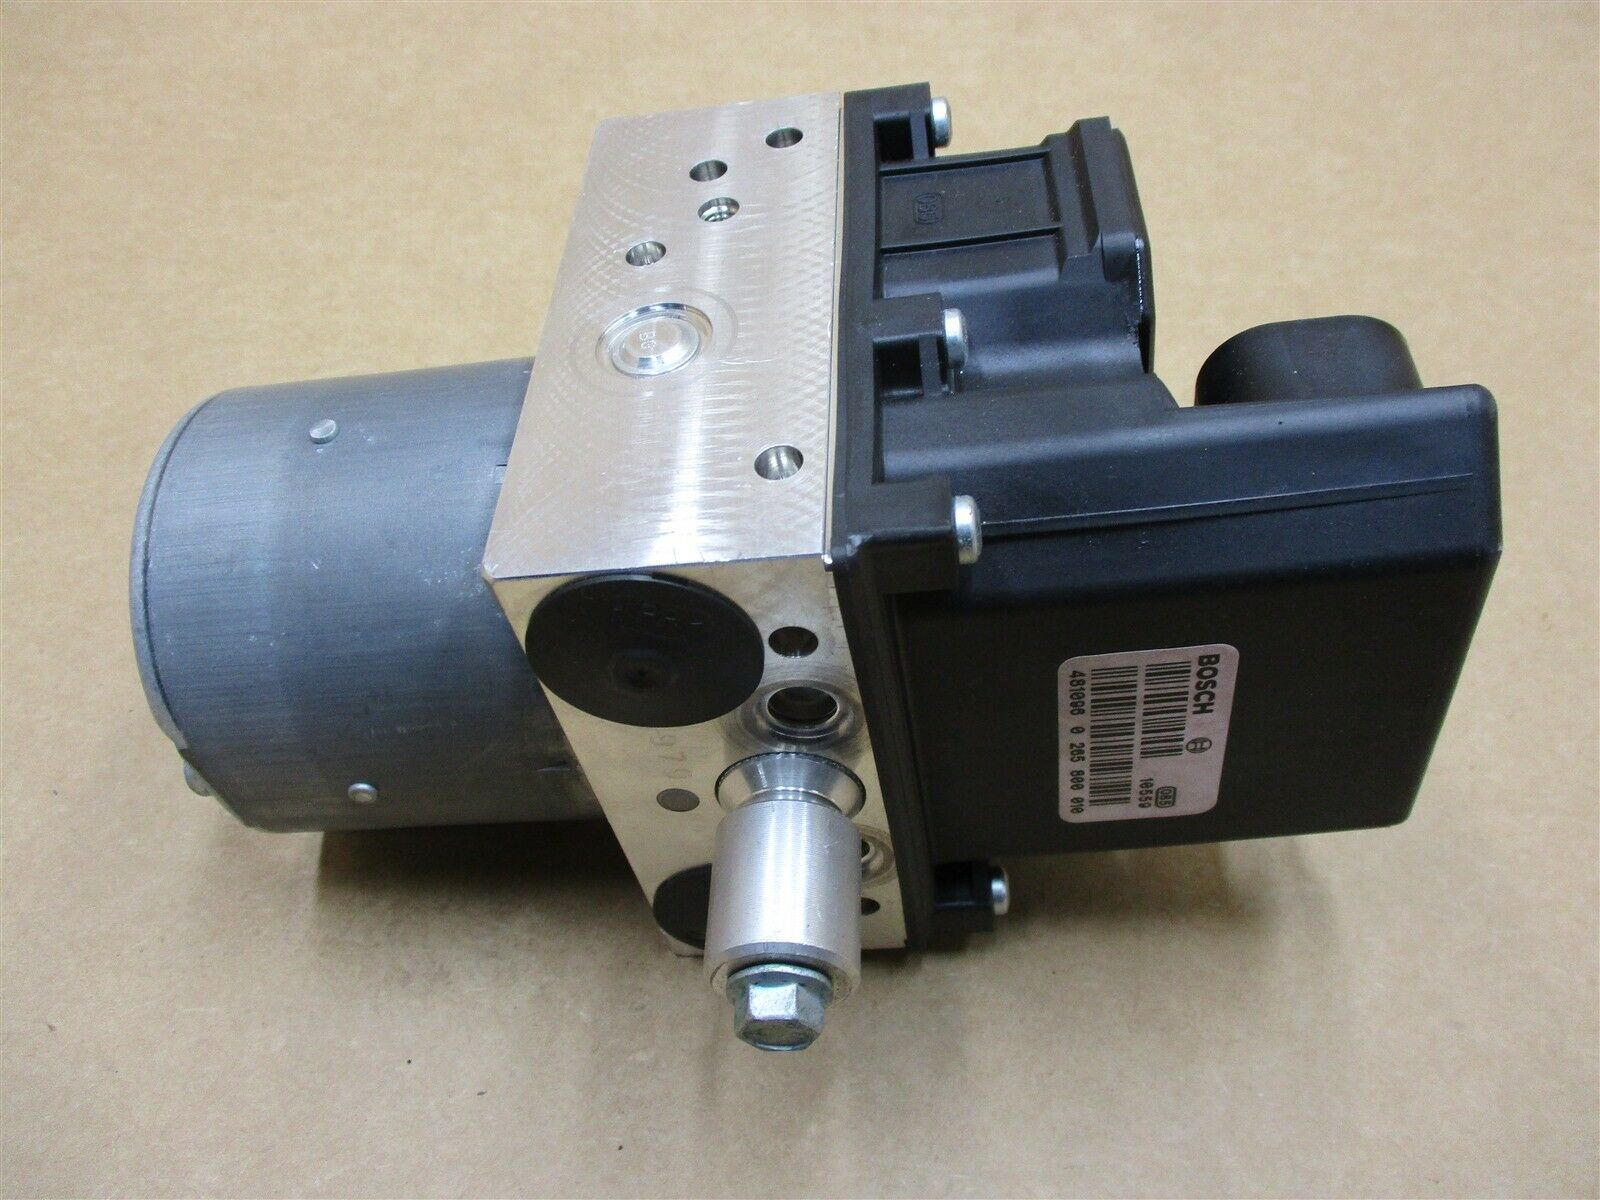 04 Boxster RWD Porsche 986 ANTI LOCK ABS BRAKE PUMP 99635575506 57,580